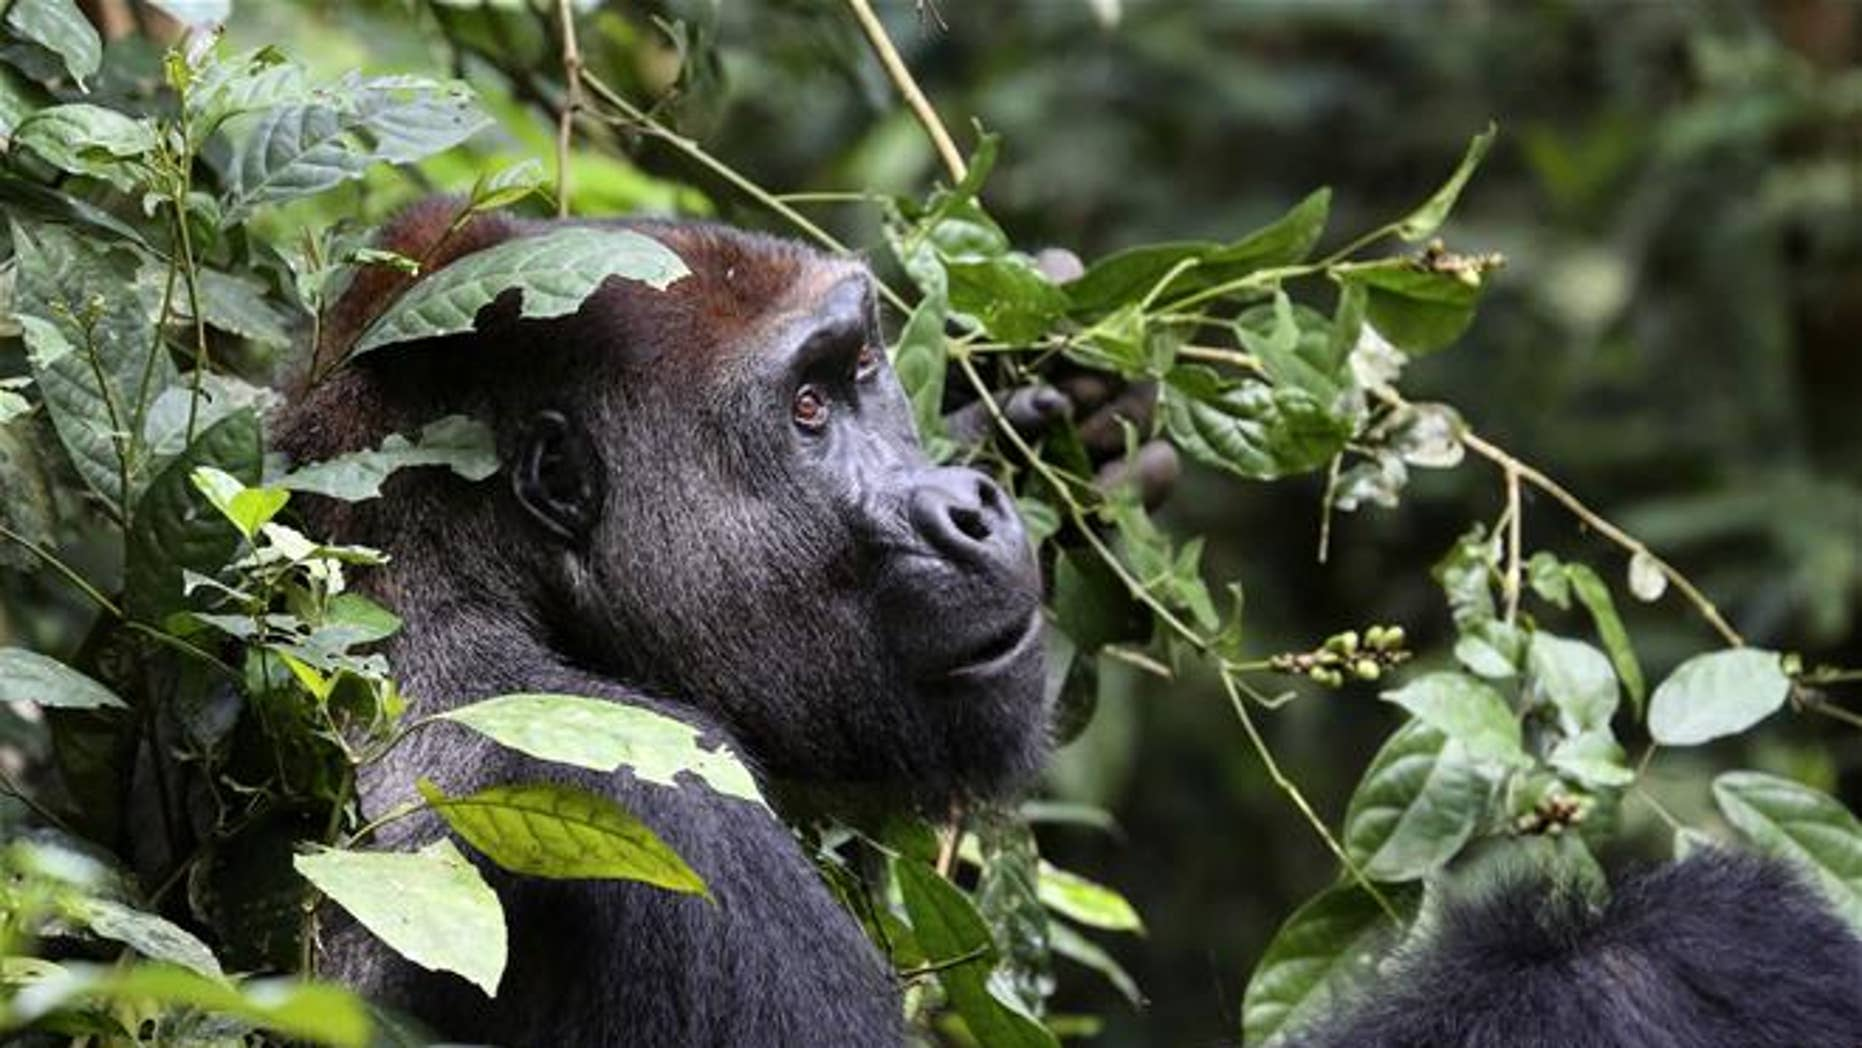 Researchers now estimate that there are more than 360,000 lowland gorillas in the wild in Western Africa. Previous estimates placed the population at 150,000 to 250,000.